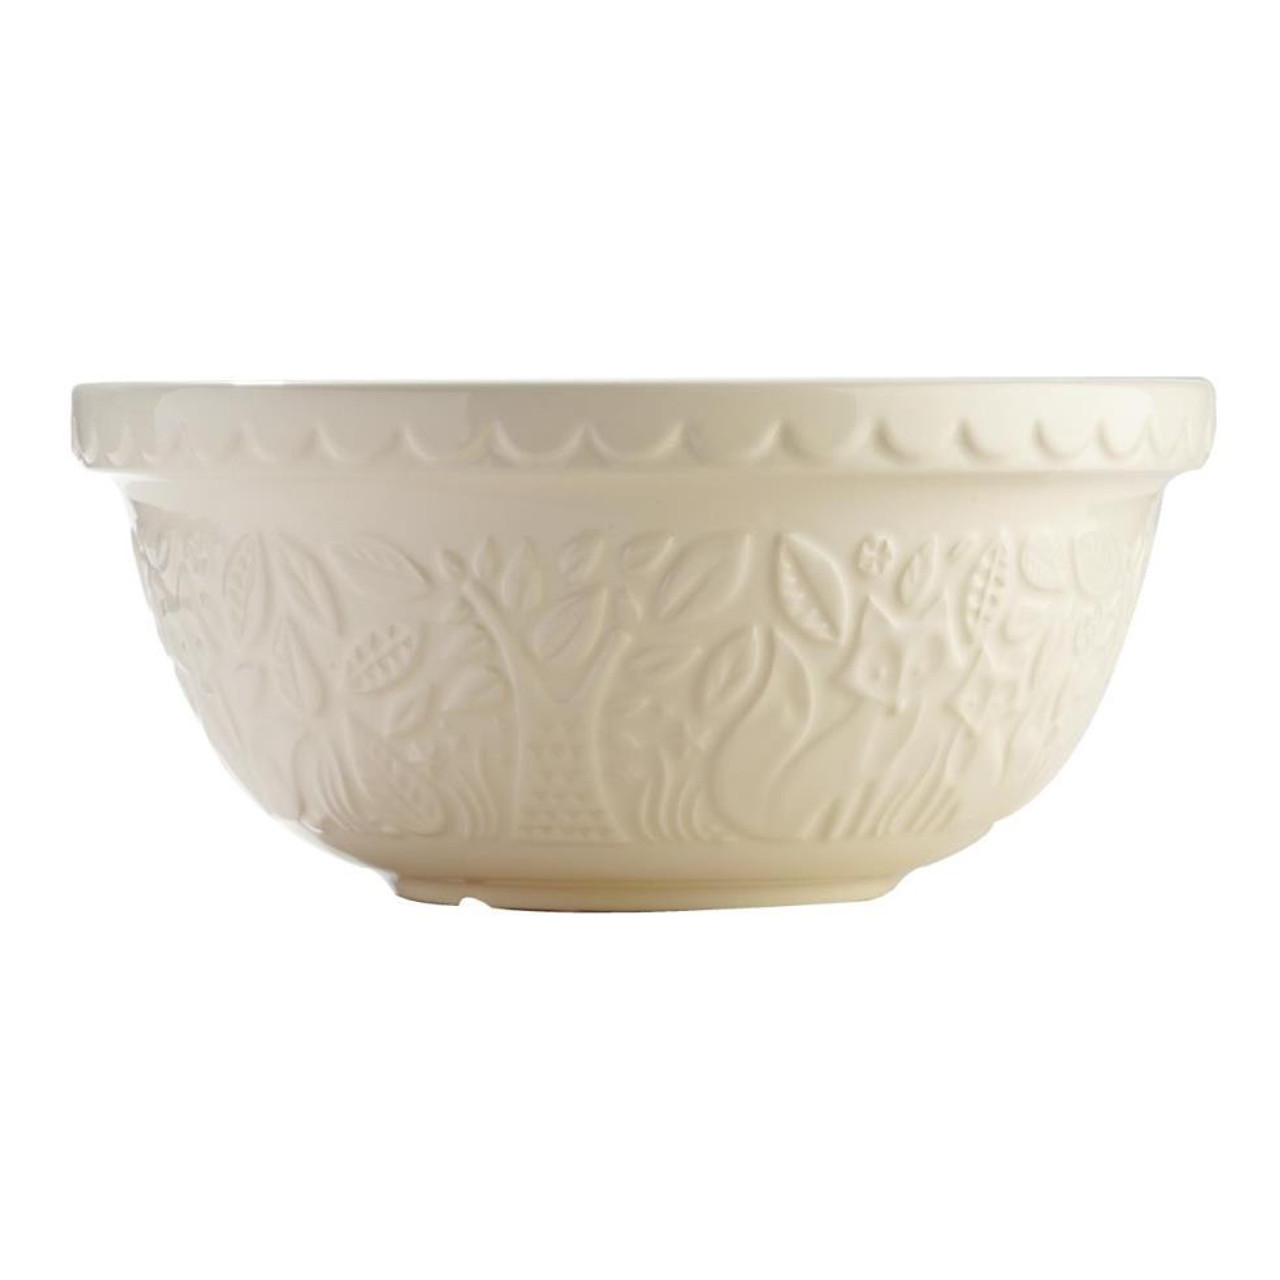 MASON CASH FOREST MIXING BOWL 29CM - CREAM